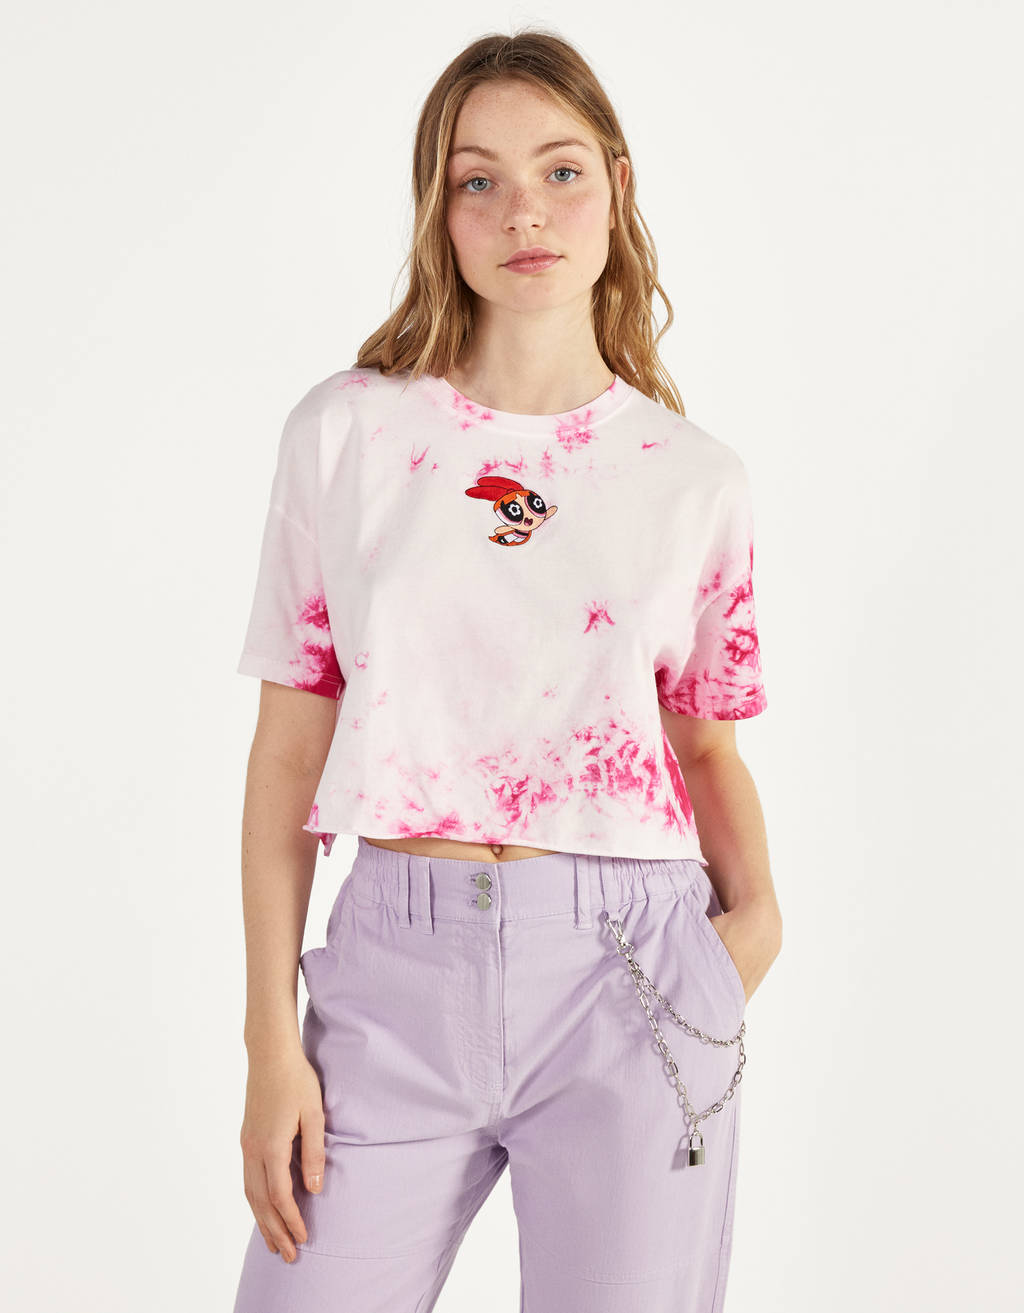 Koszulka tie-dye The Powerpuff Girls x Bershka